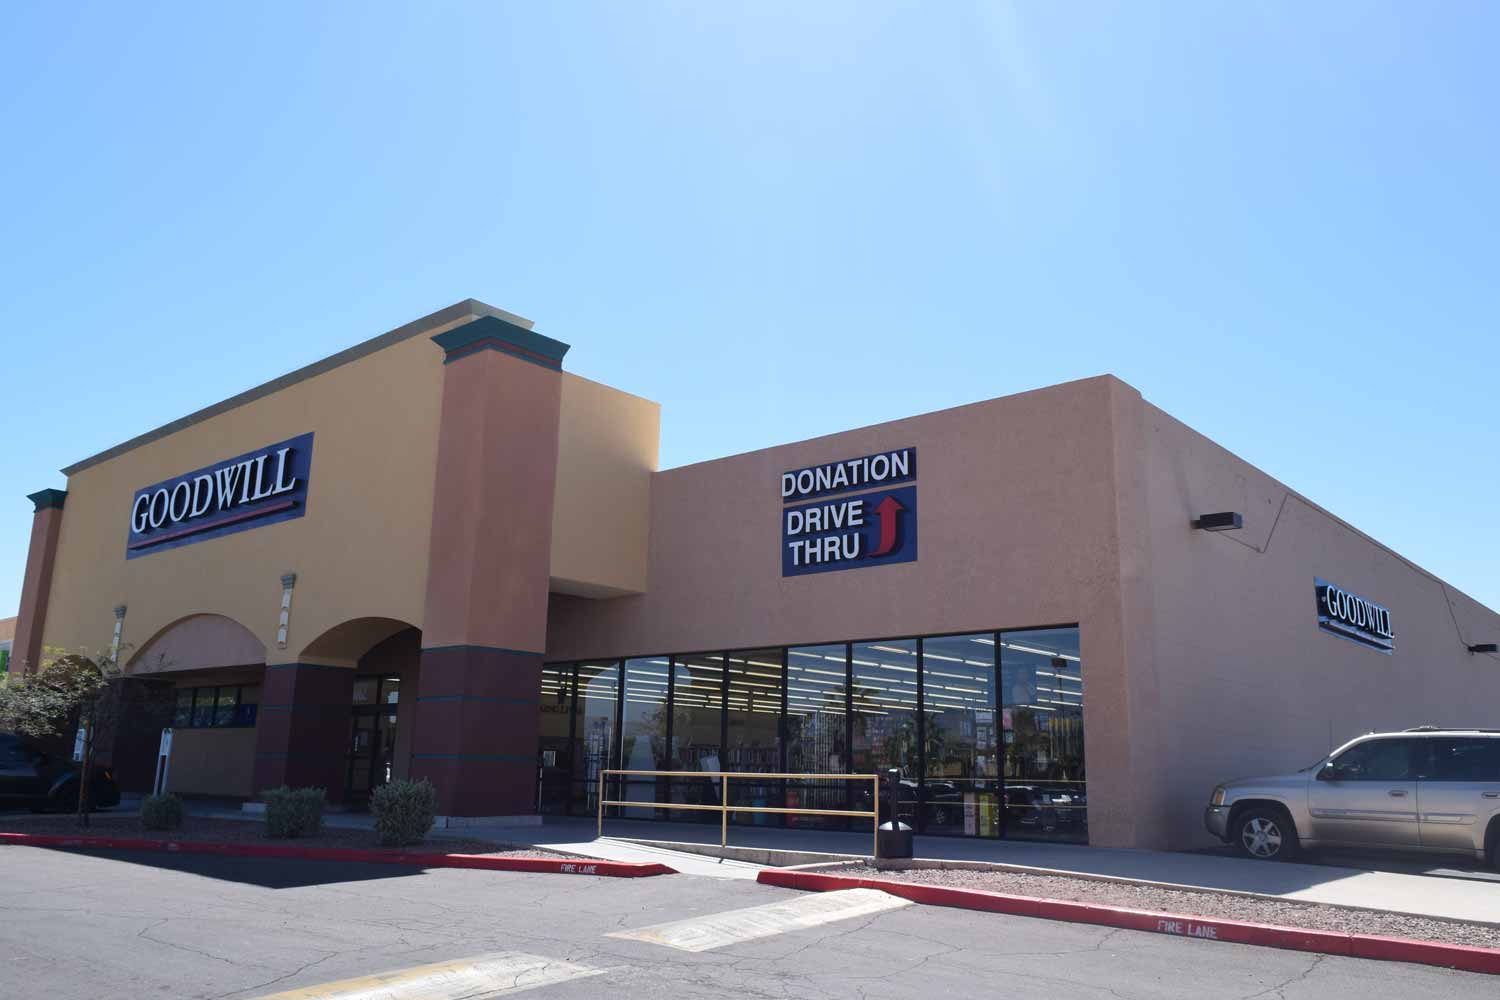 Alvernon Thrift Store and Donation Center - Goodwill